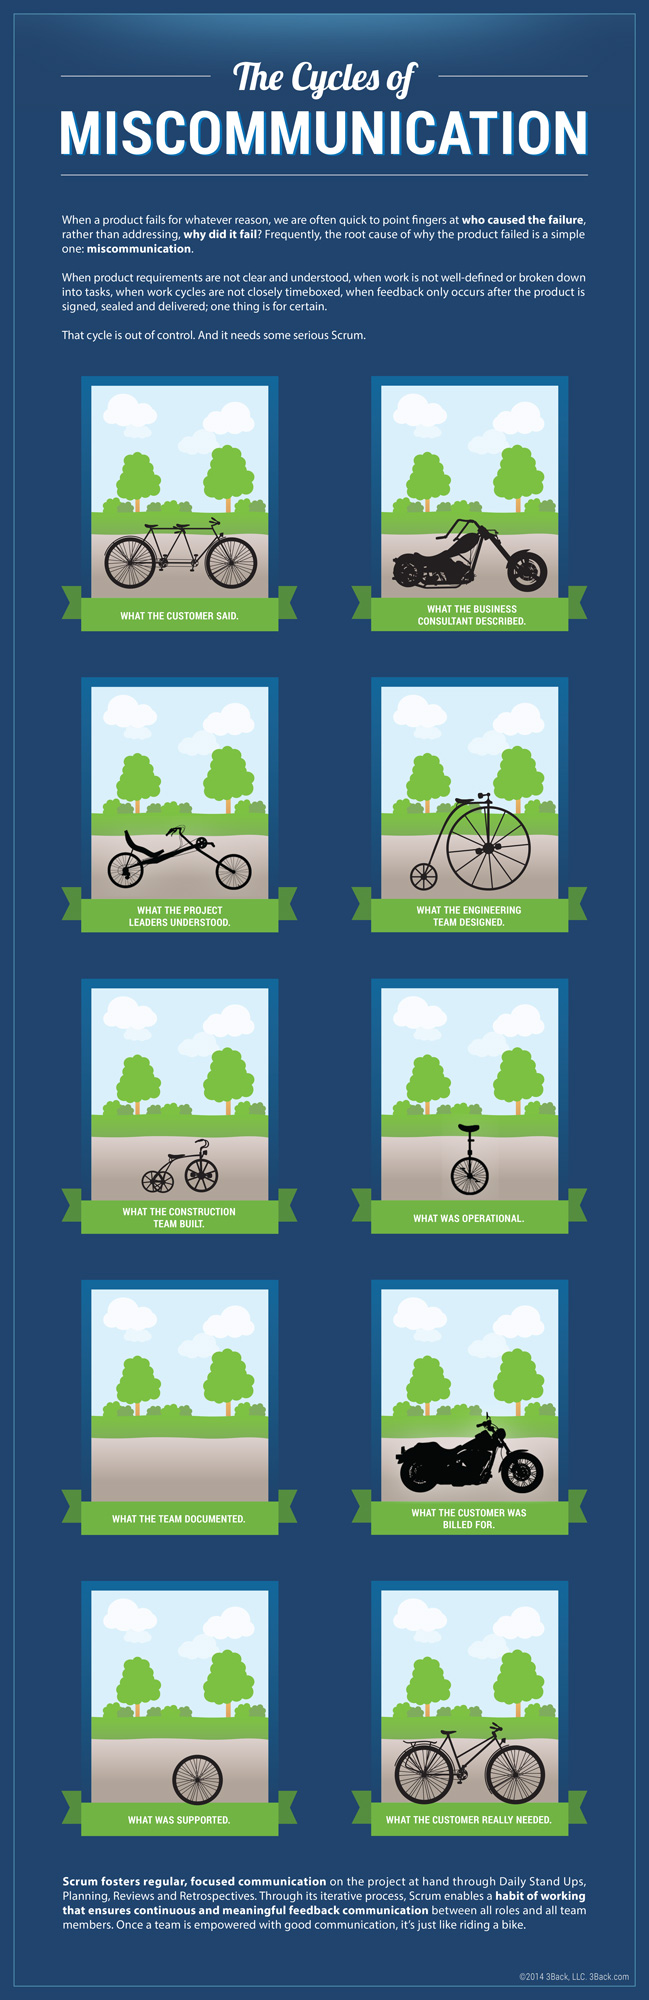 The Cycles of Miscommunication Infographic